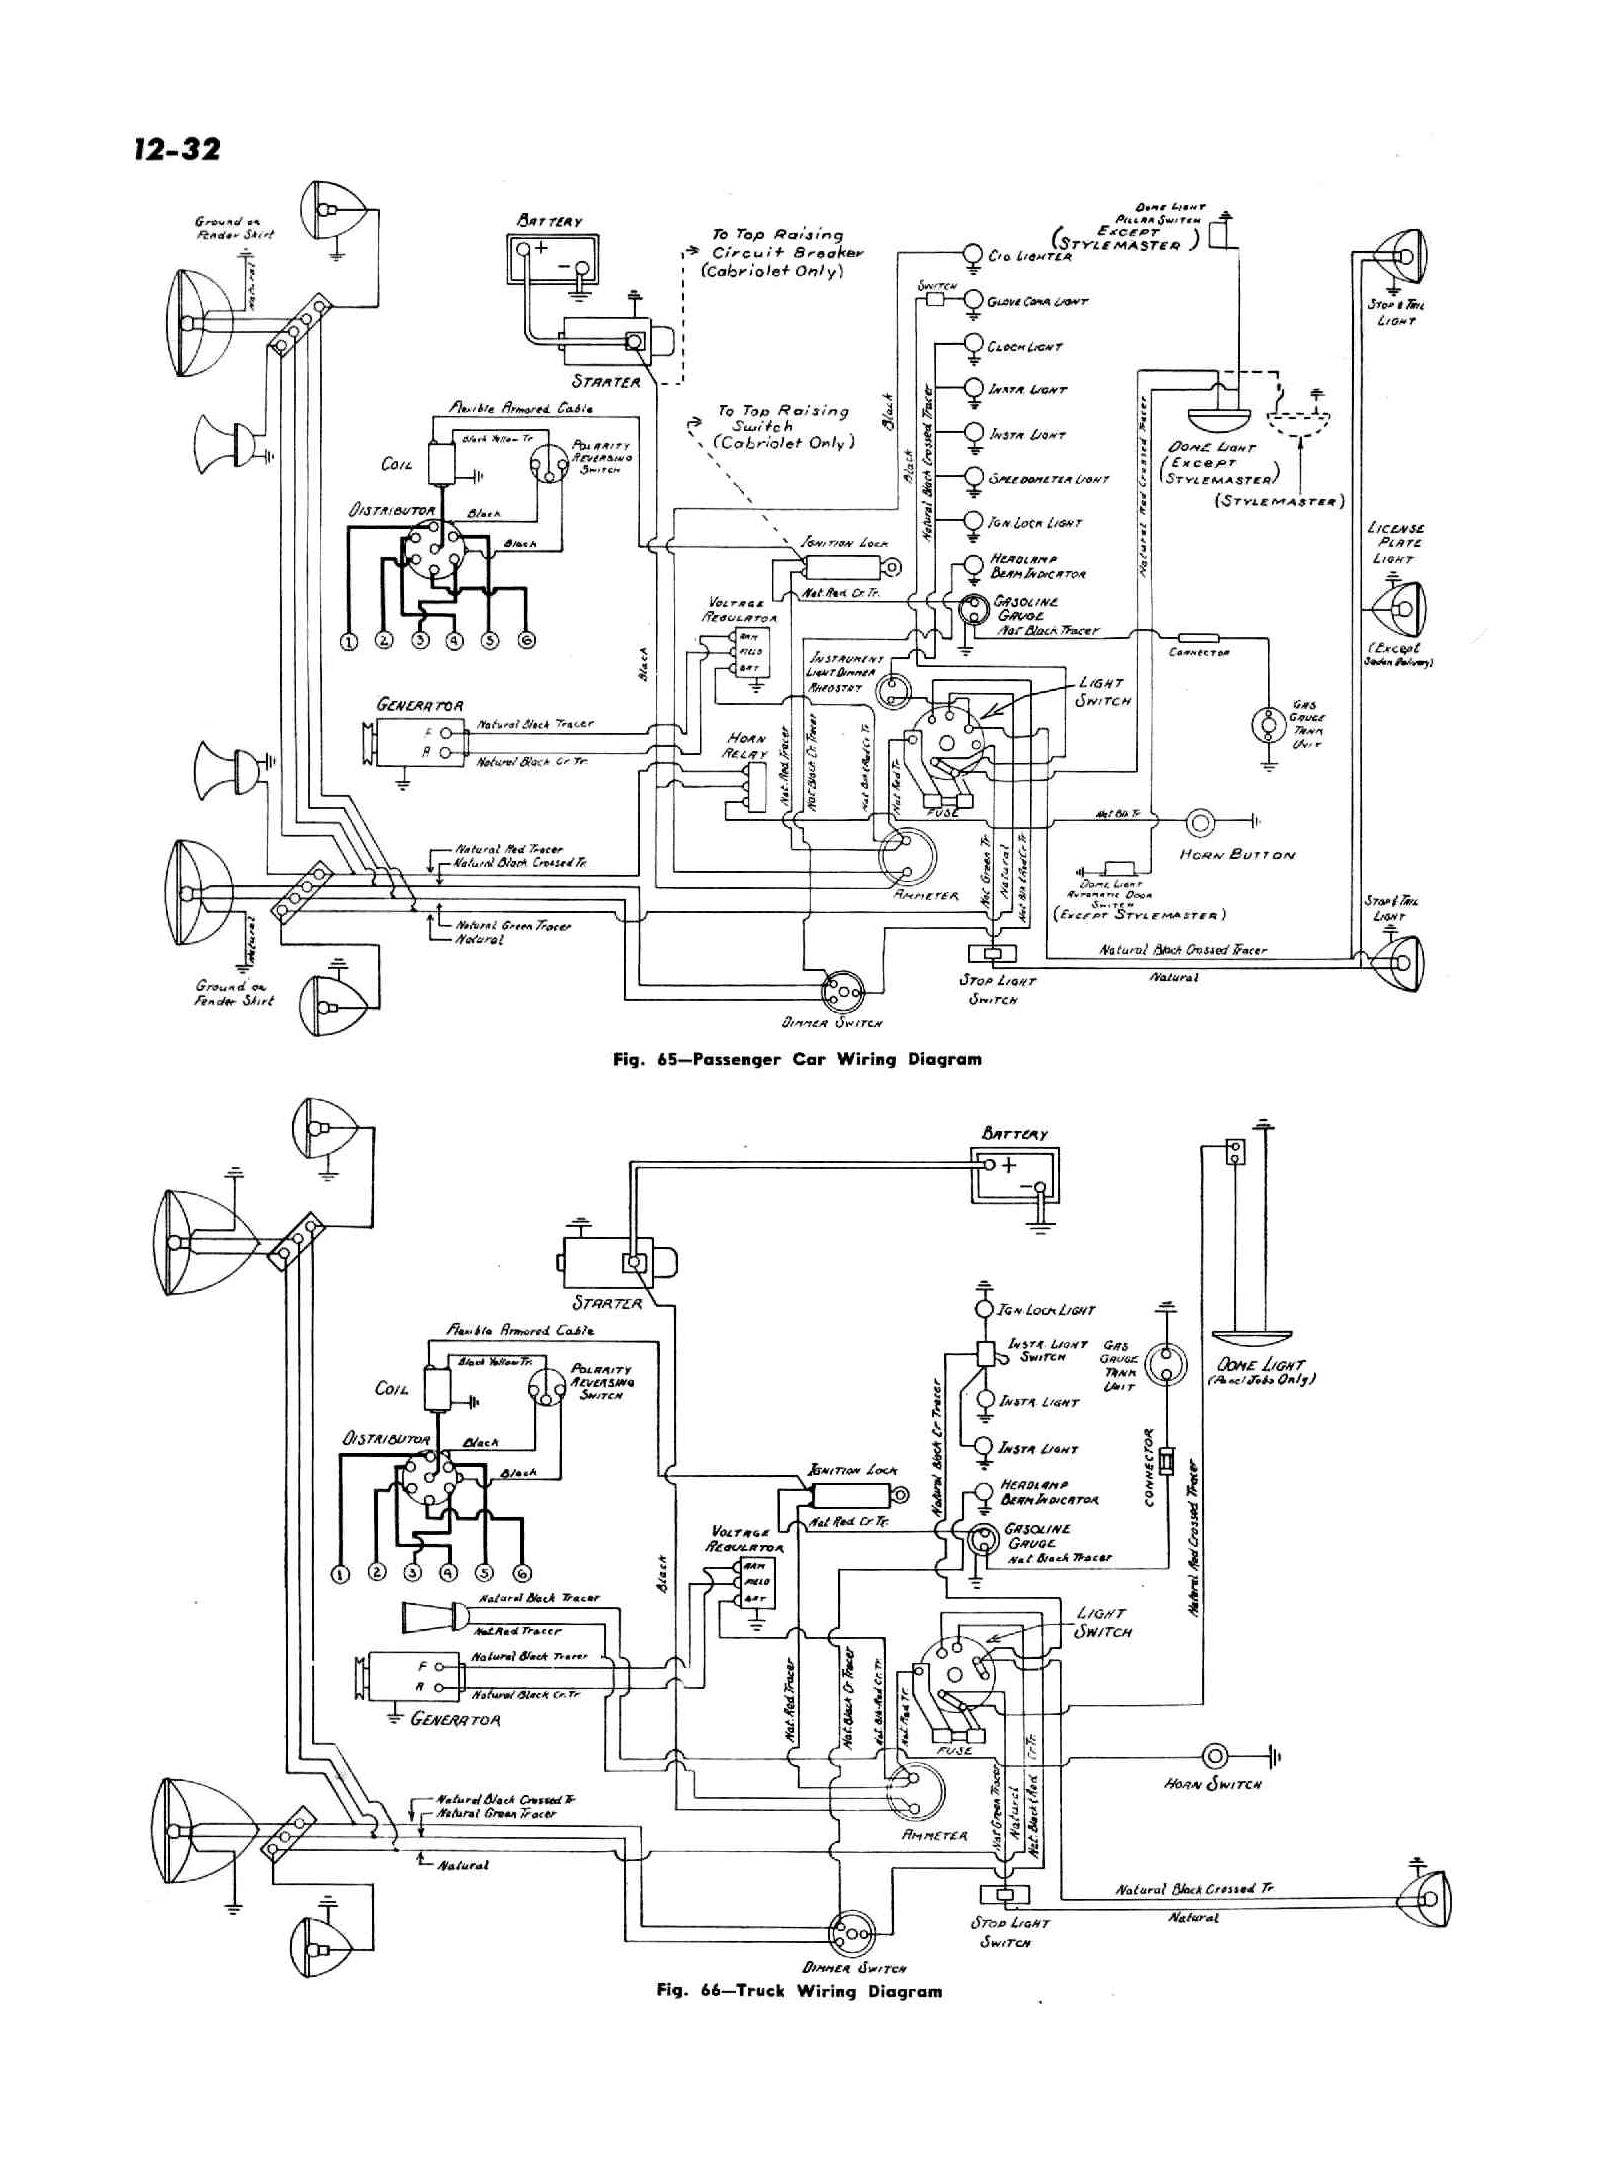 Chevy wiring diagrams 1947 lincoln continental wiring diagram 1947 passenger car truck wiring